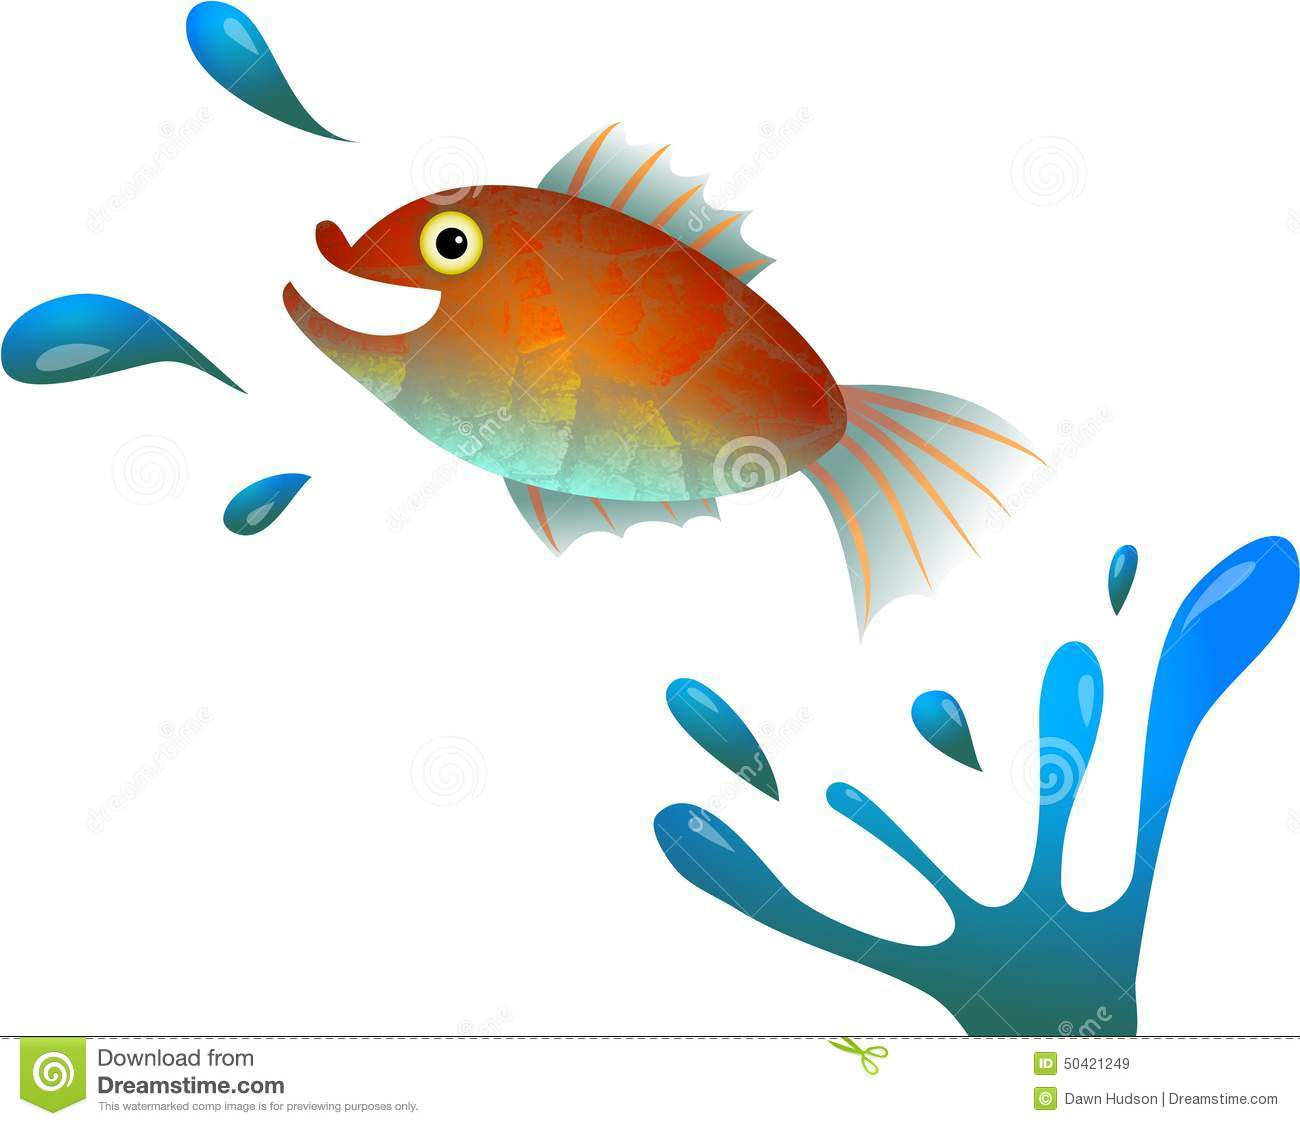 Cartoon fish jumping out of water clipart - photo#8